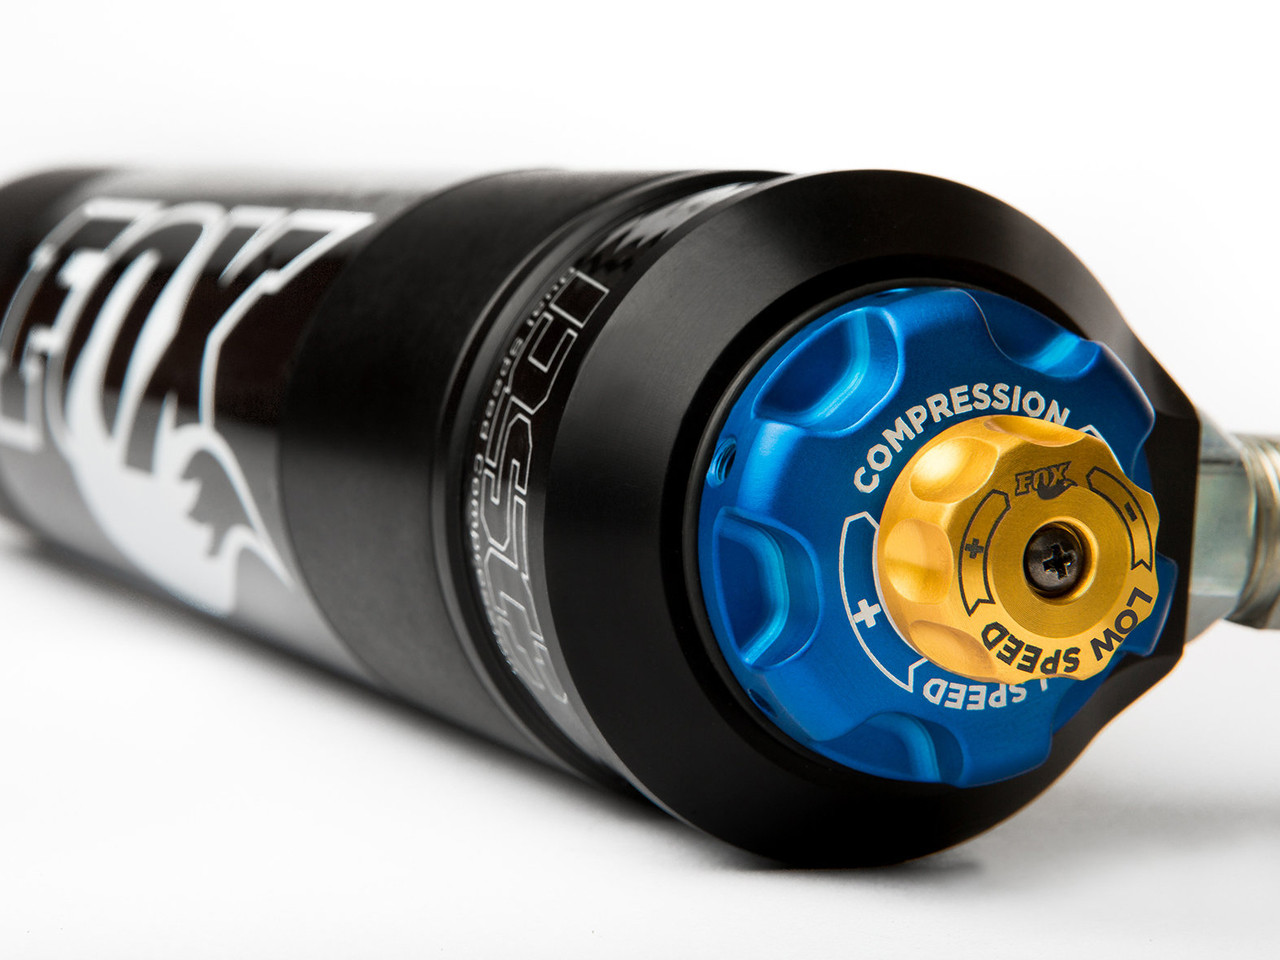 Fox's DSC (Dual Speed Compression) allows for precise tuning and unmatched performance.